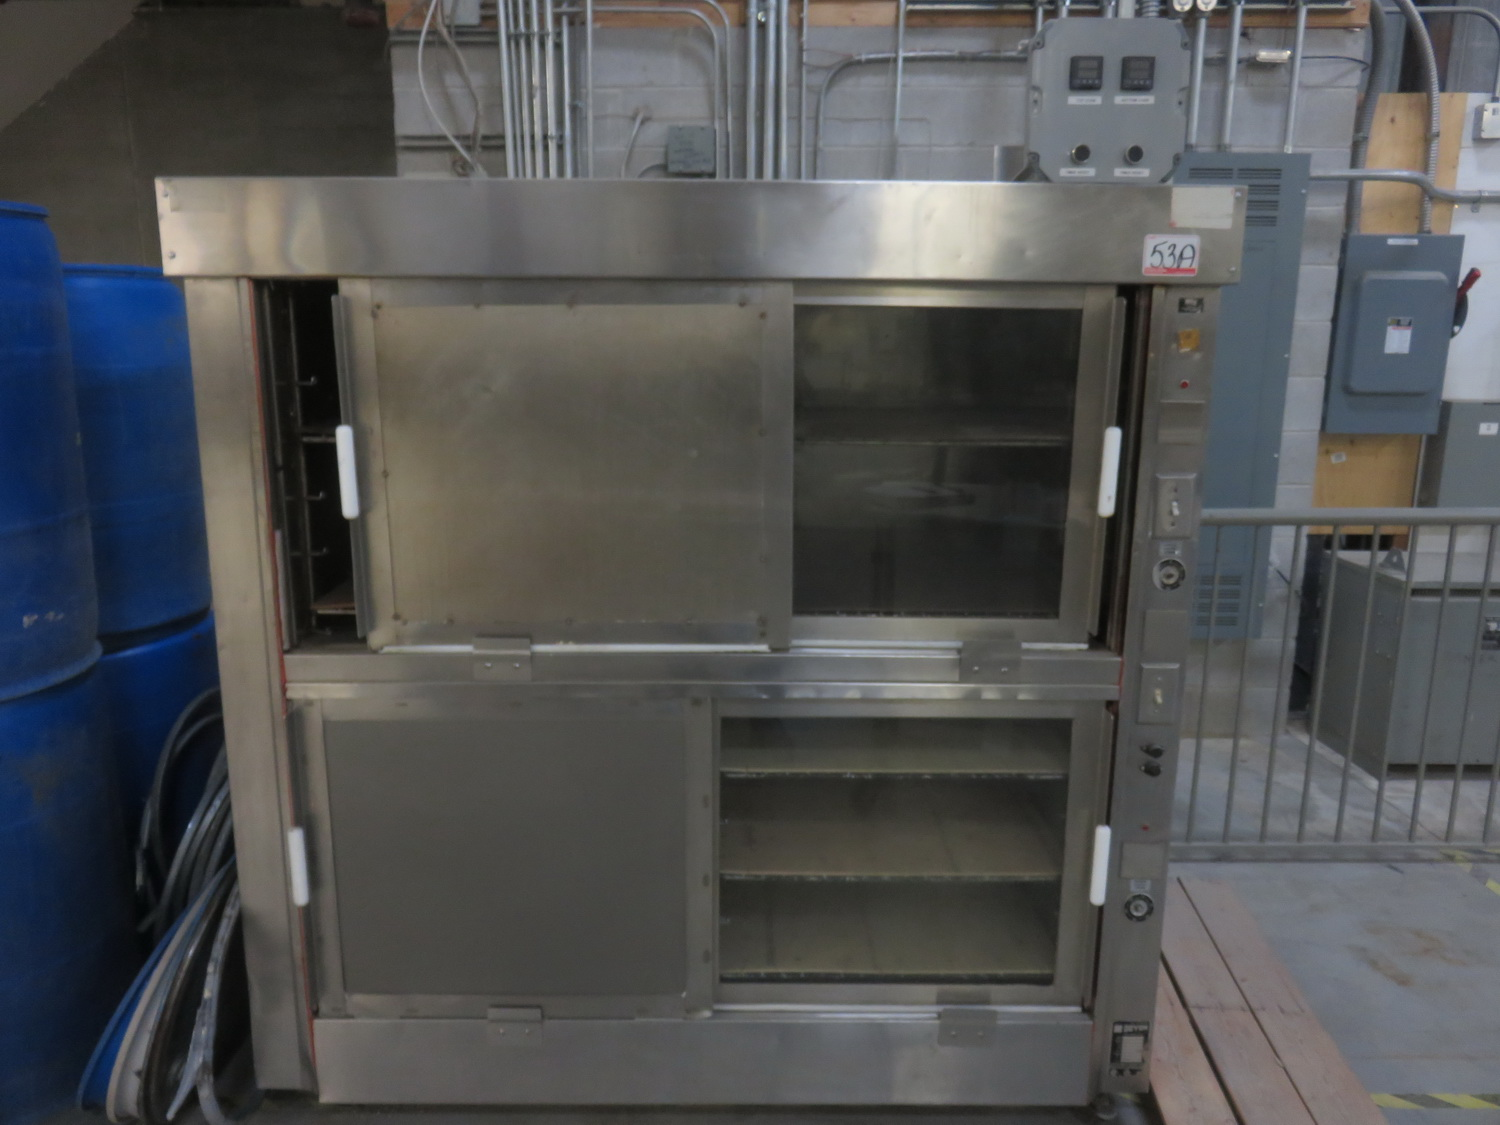 CANADIAN FOOD EQUIPMENT STAINLESS STEEL STACKED ELECTRIC OVENS